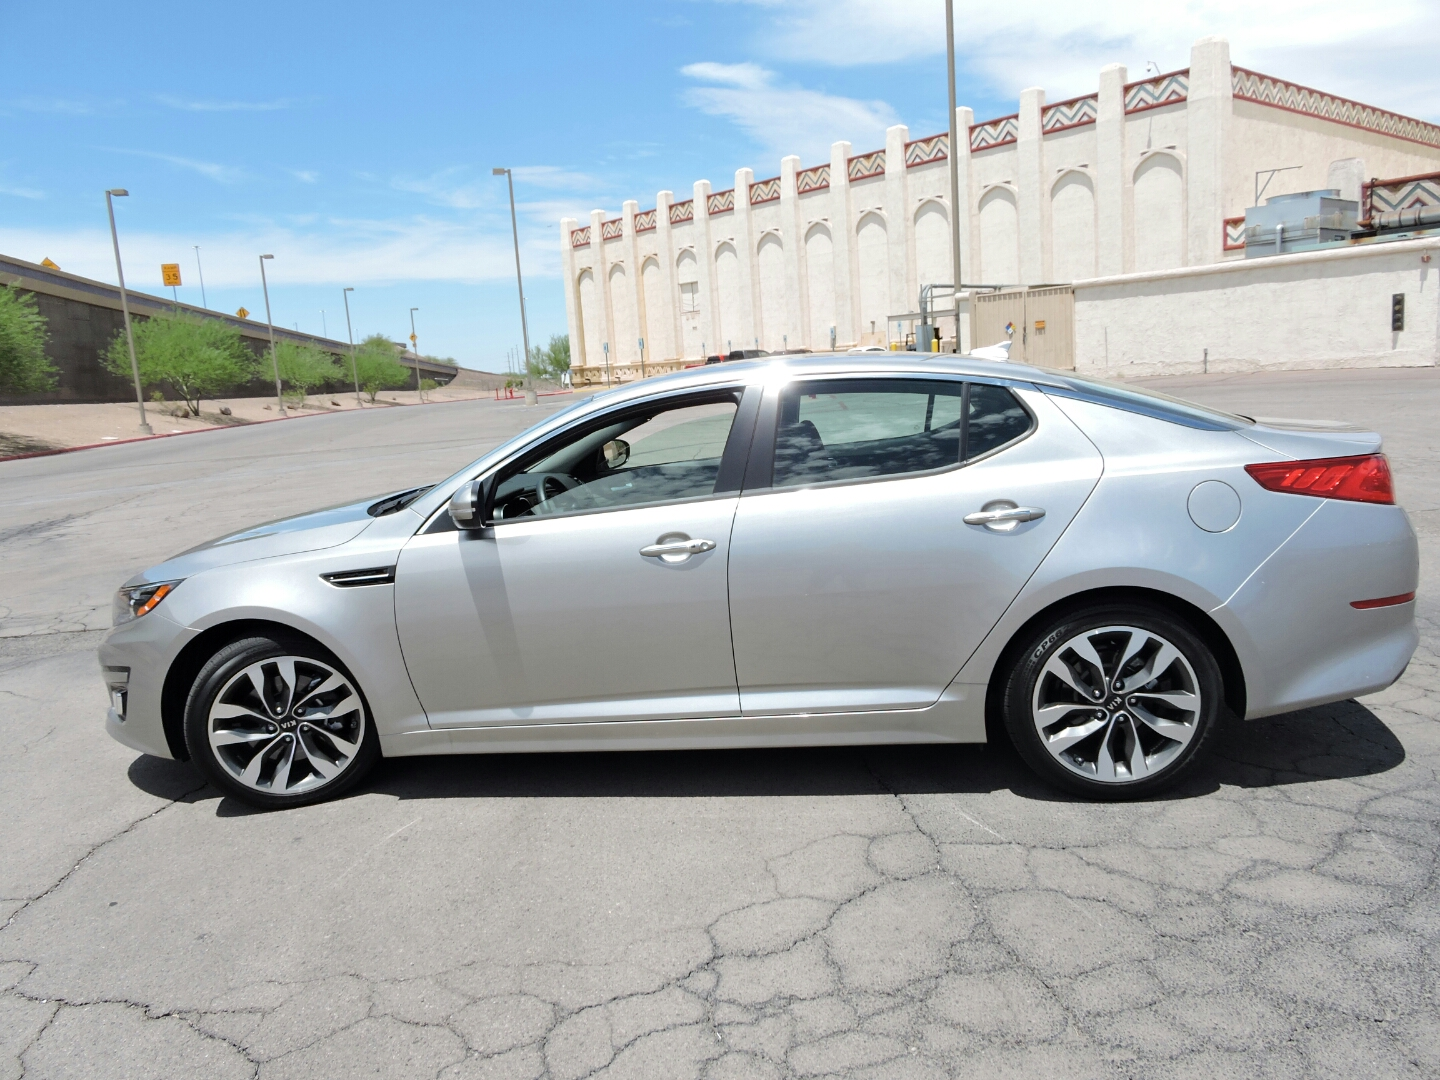 my sx review mouf pm in sep get drivekia optima kia photo